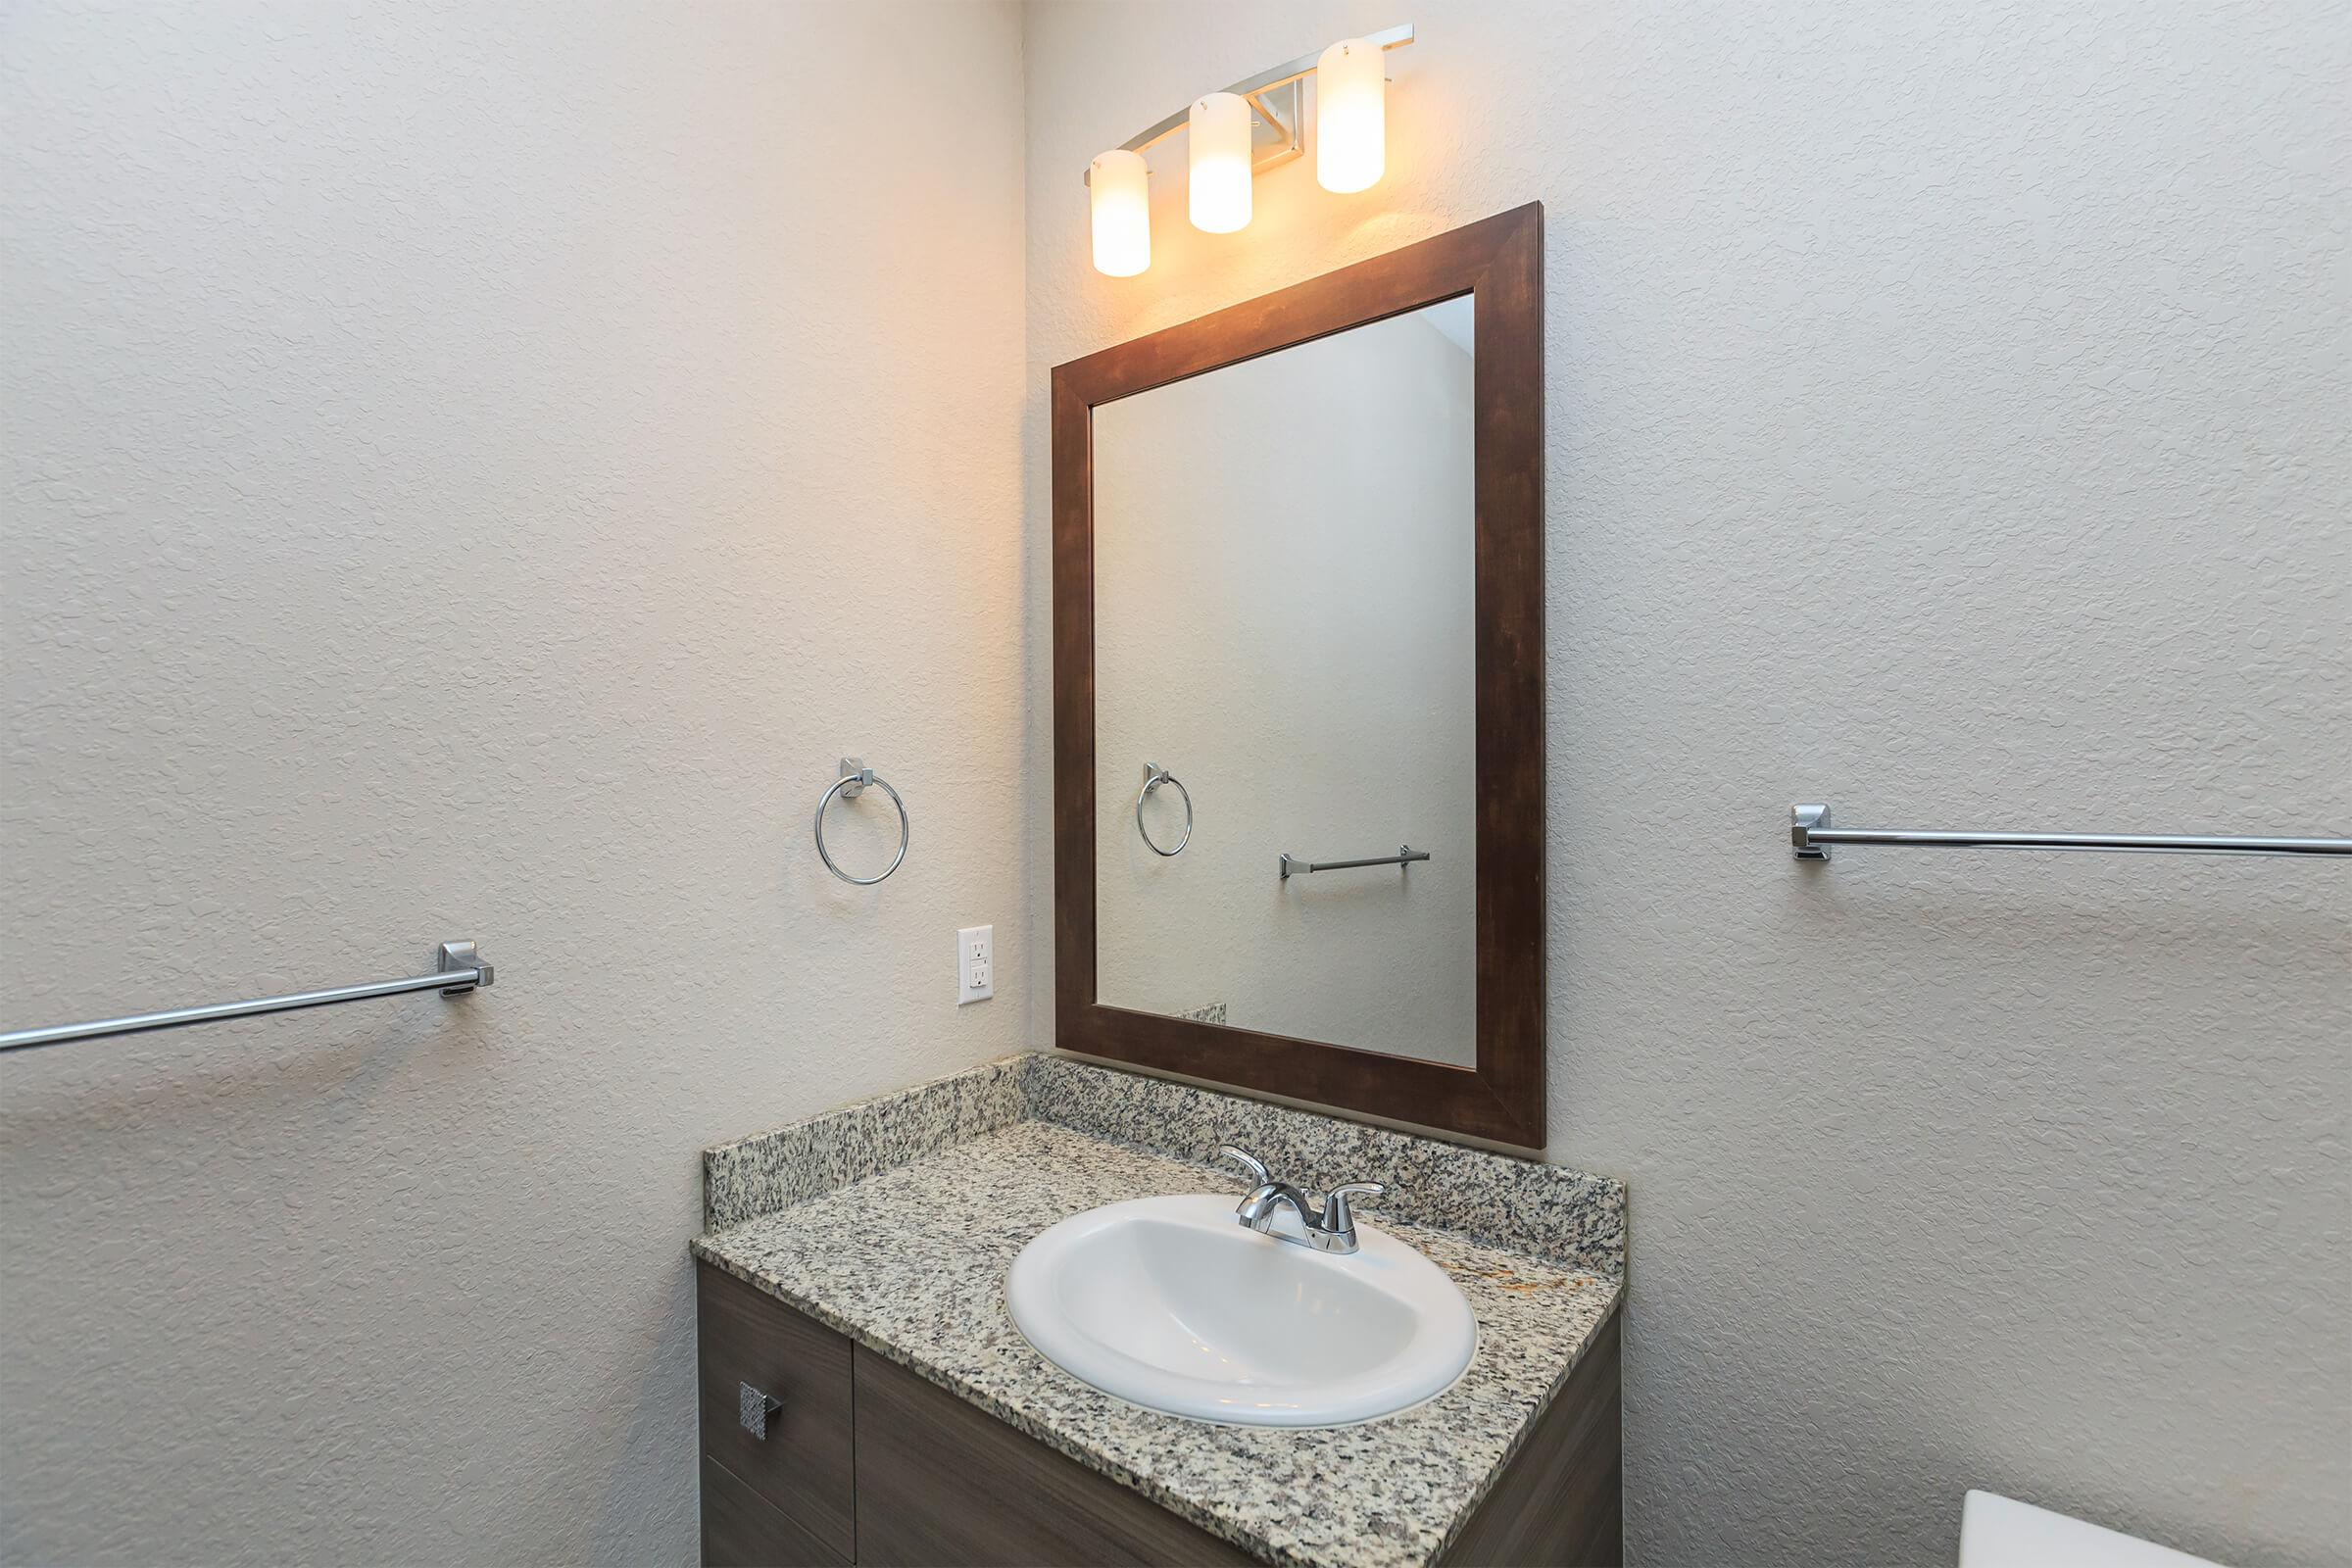 Bathroom at RiZE at Winter Springs Apartments in Winter Springs, FL